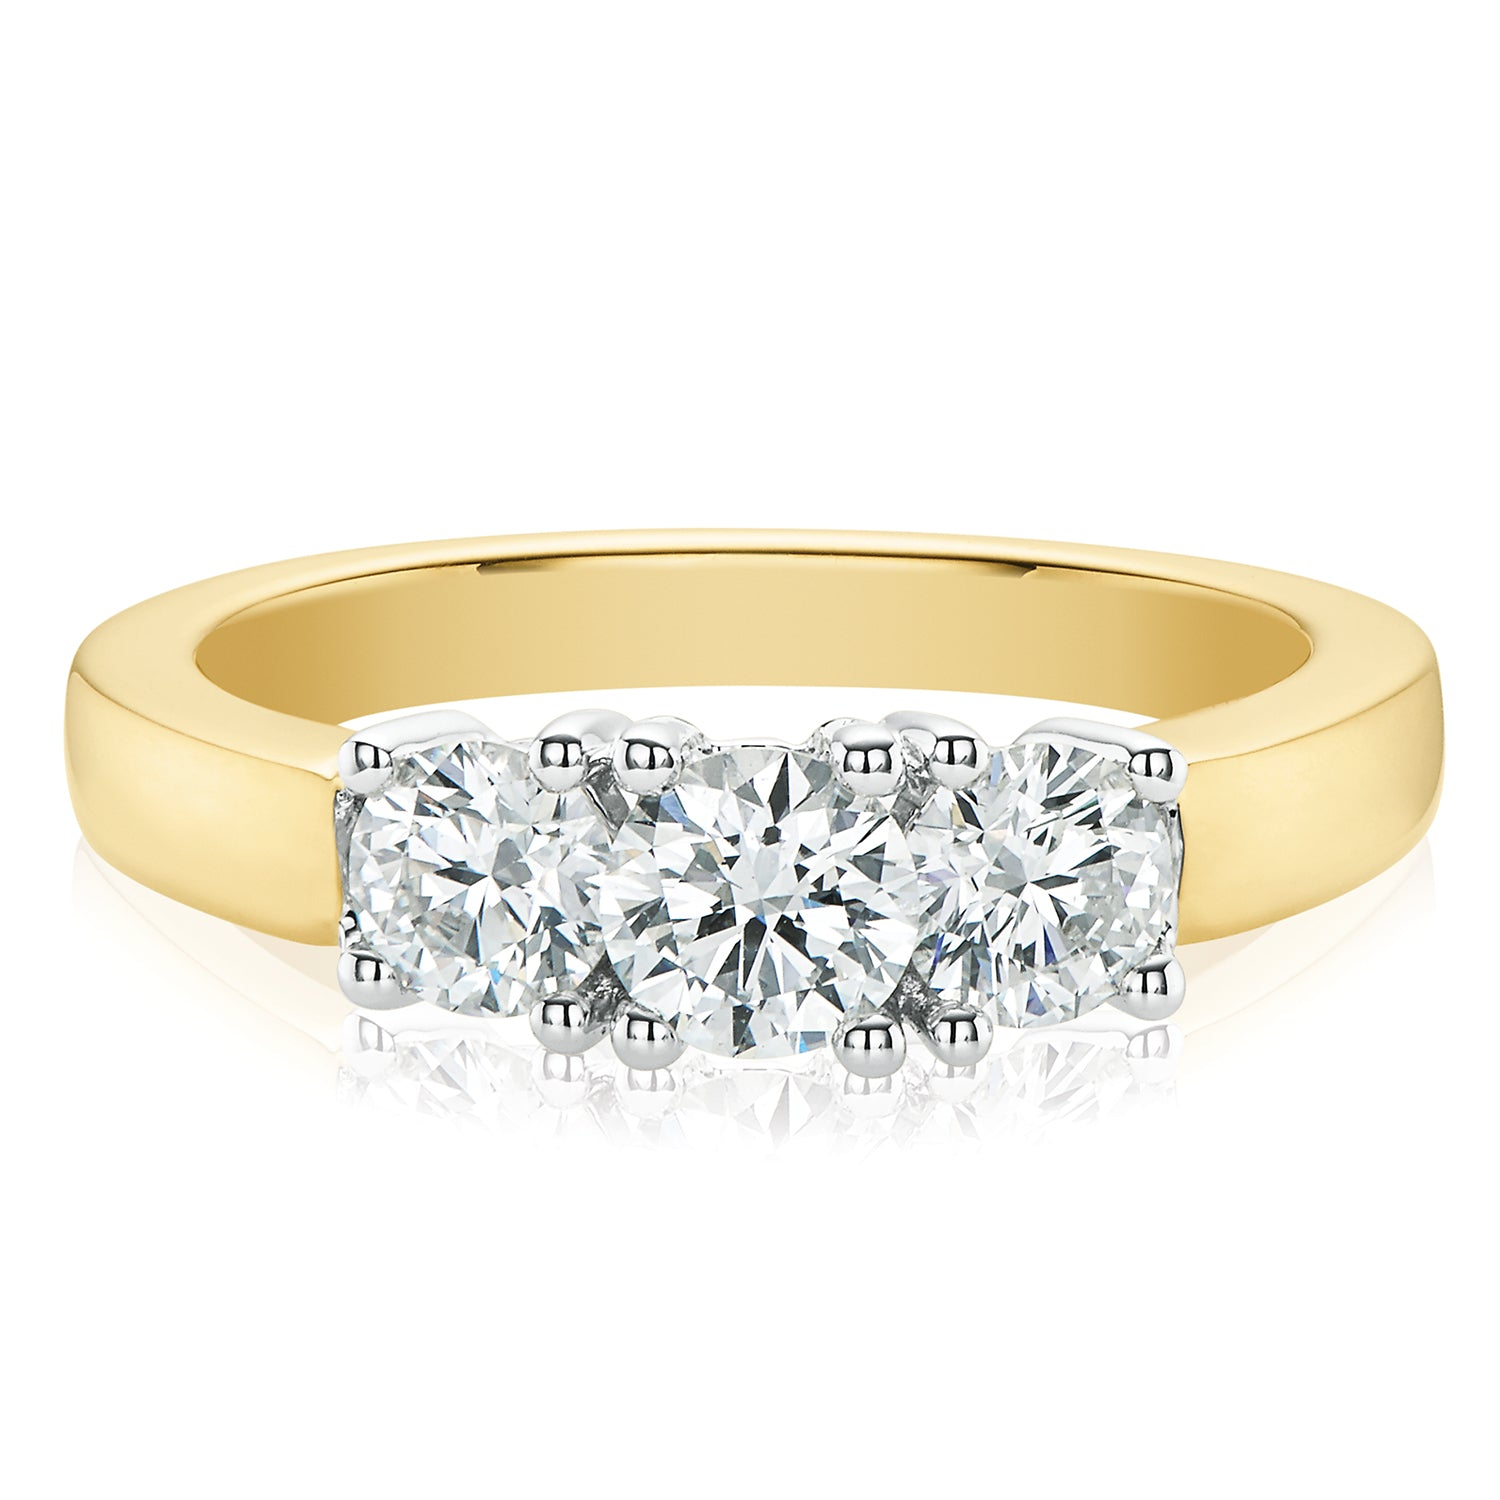 Rand 18ct Two Tone Gold Round Brilliant Cut with 1 CARAT tw of Diamonds